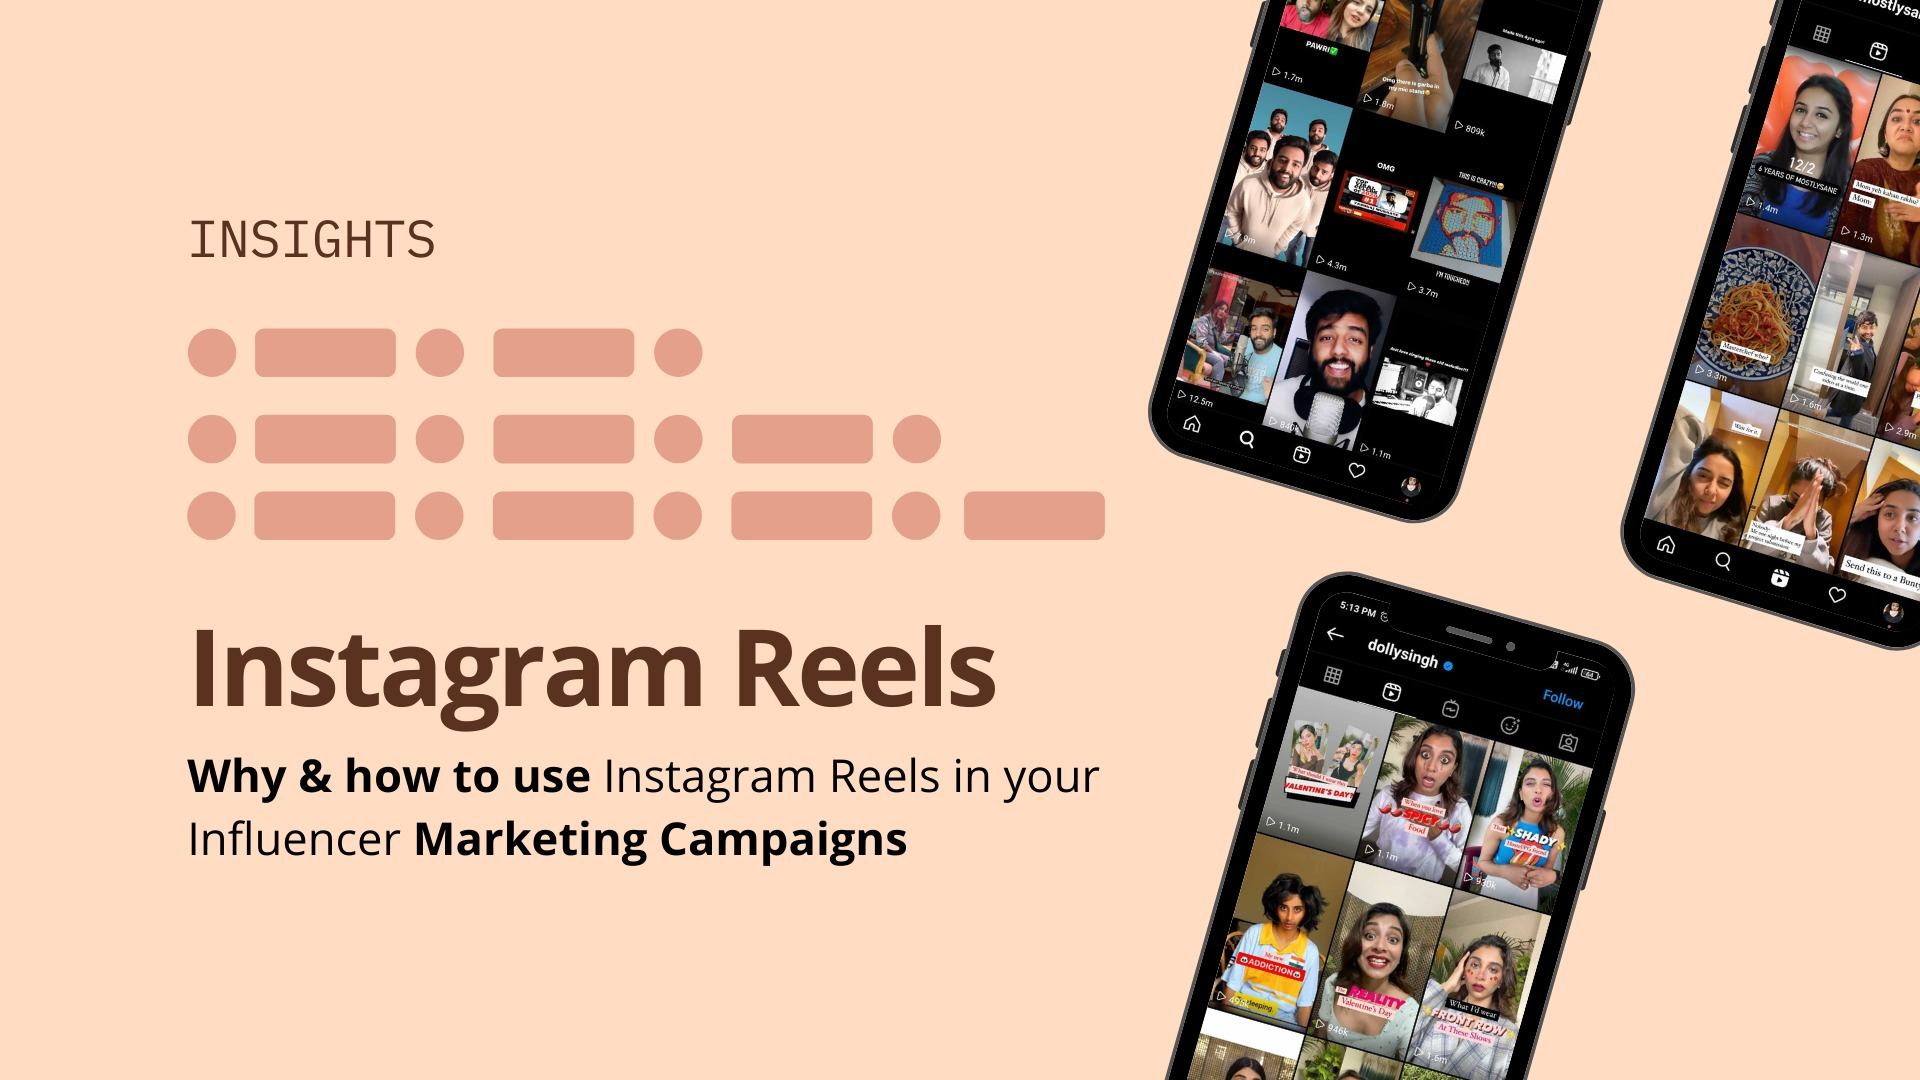 Why use Instagram Reels in your Influencer Marketing Campaigns? image